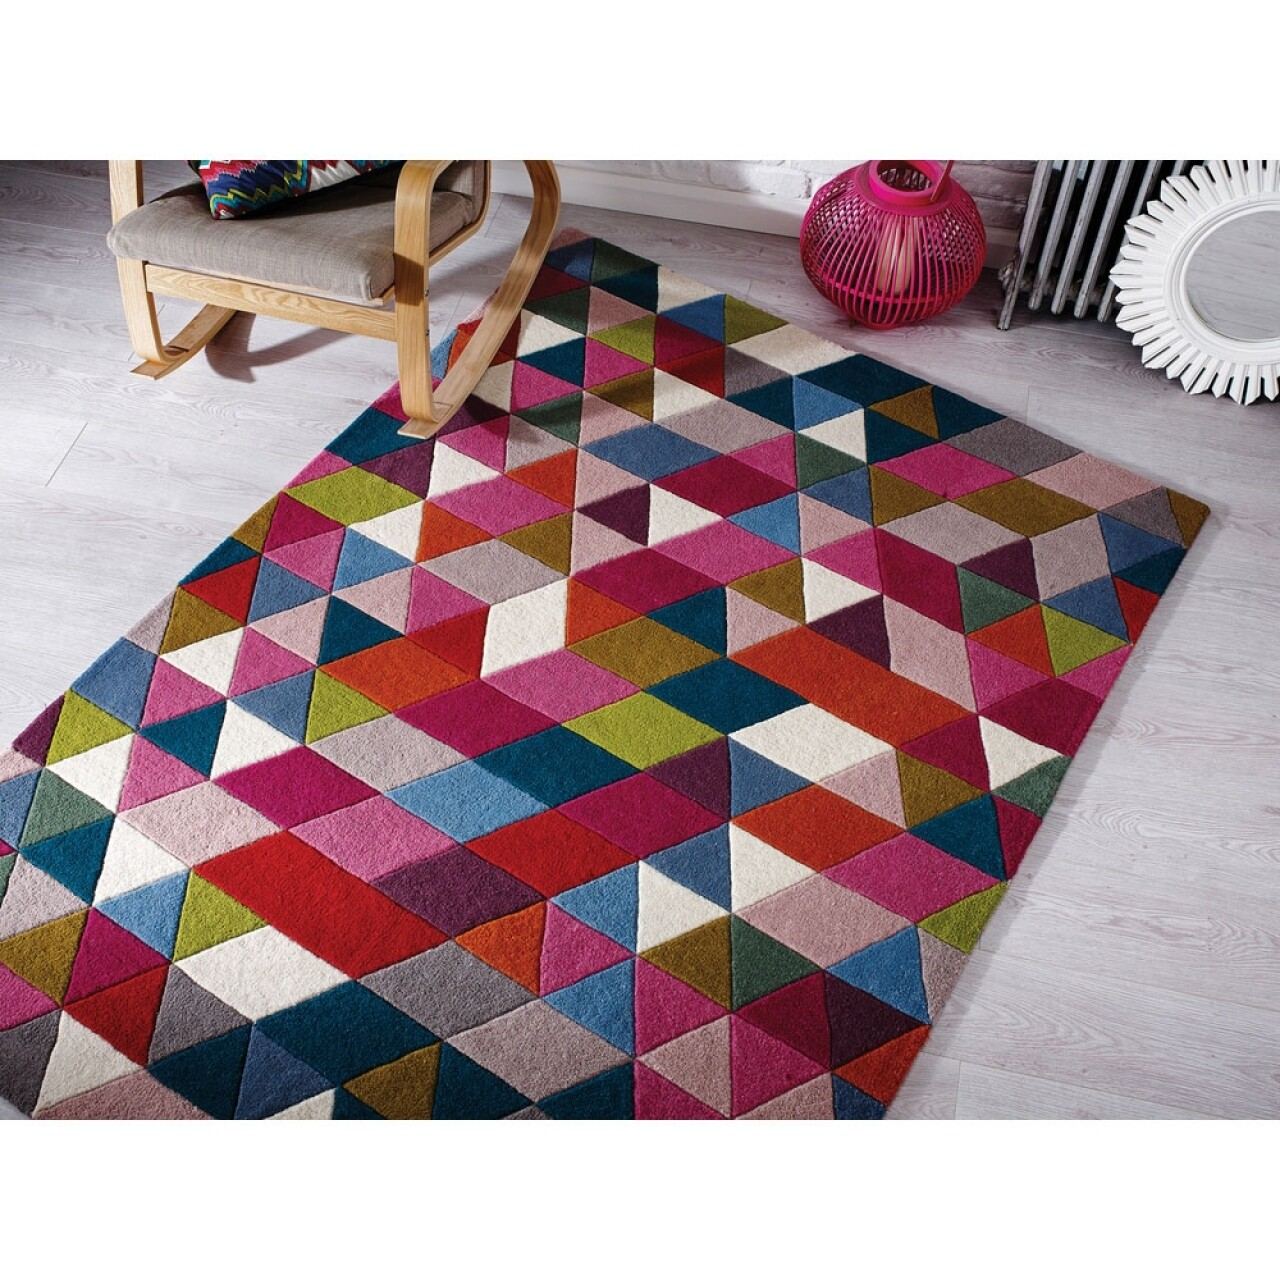 Covor Illusion Prism Pink/Multi, Flair Rugs, 160 x 220 cm, 100% lana, multicolor